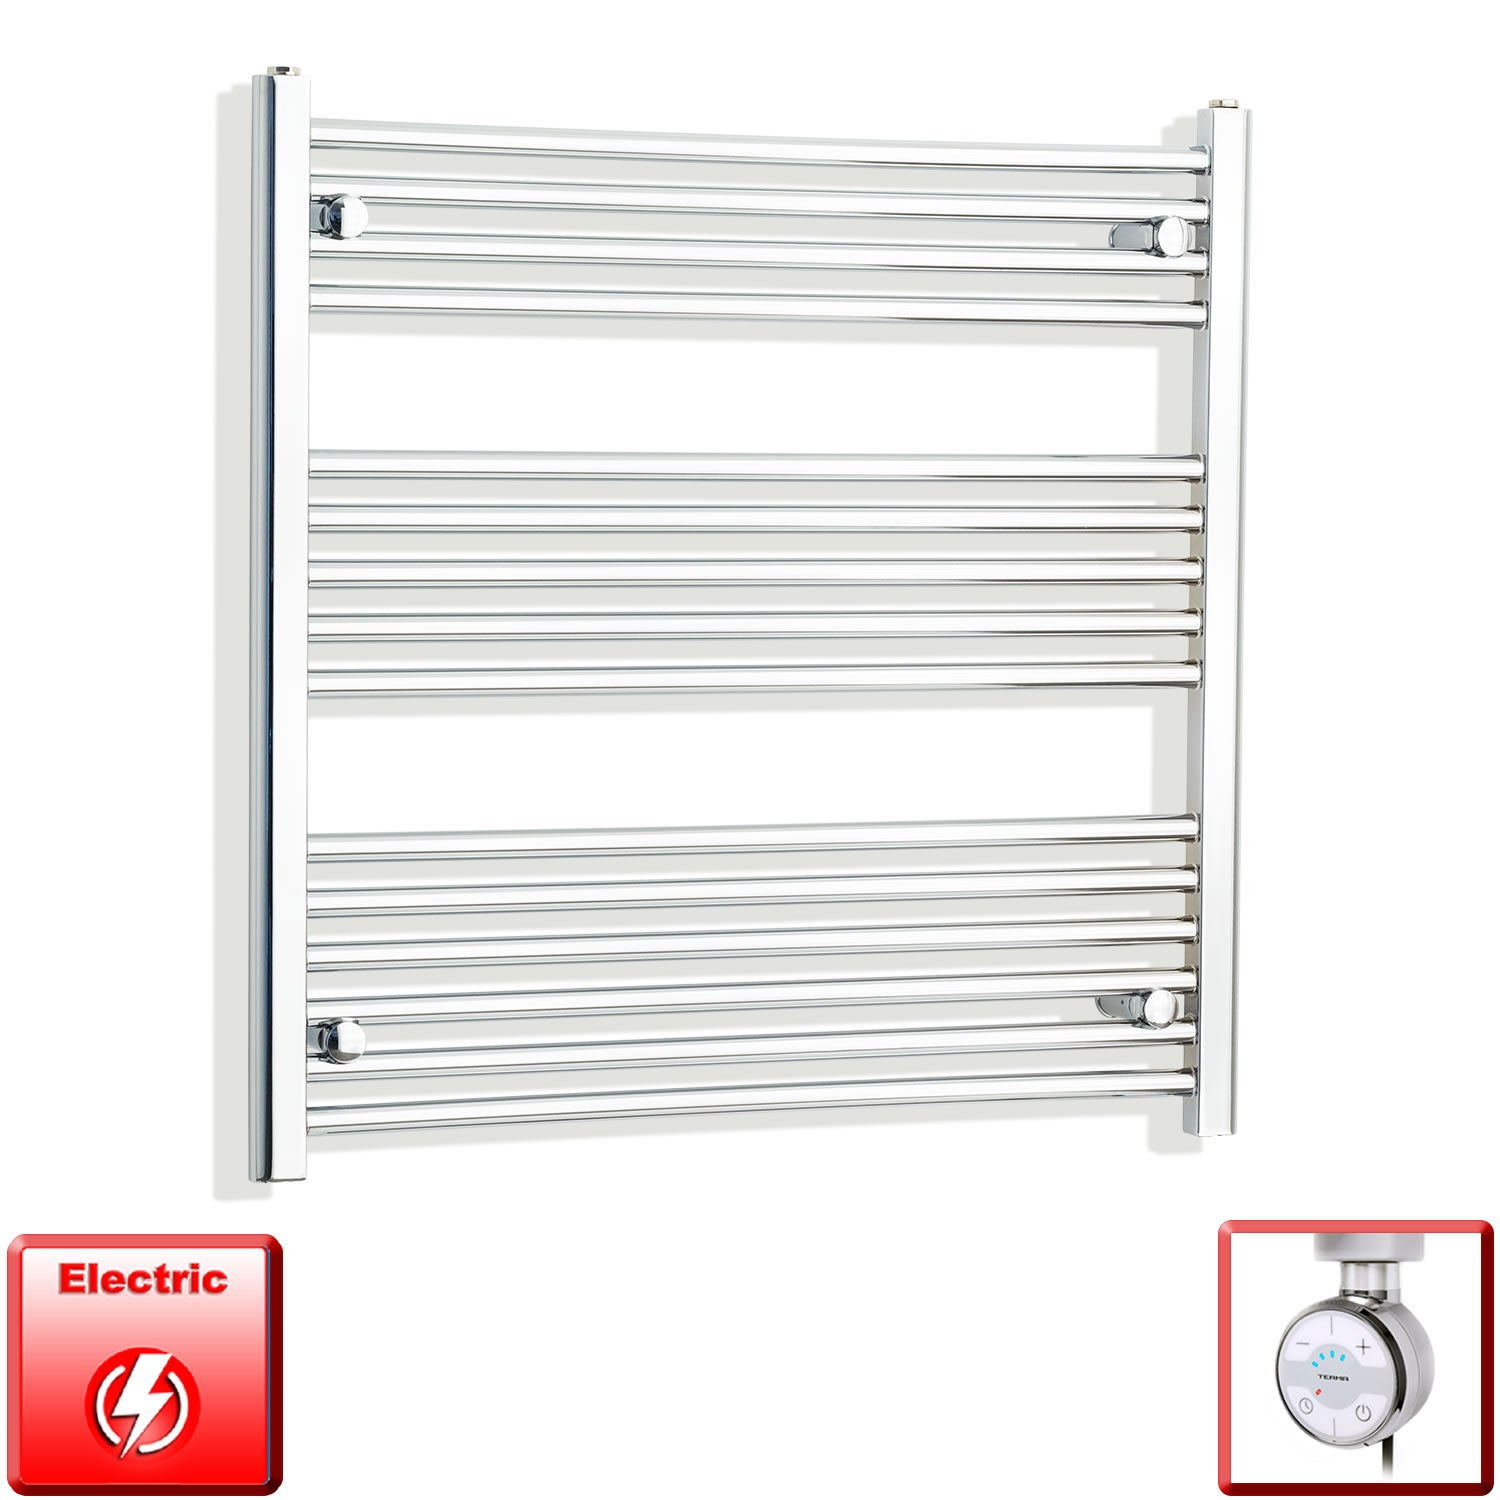 850mm Wide 800mm High Pre-Filled Chrome Electric Towel Rail Radiator With Thermostatic MOA Element